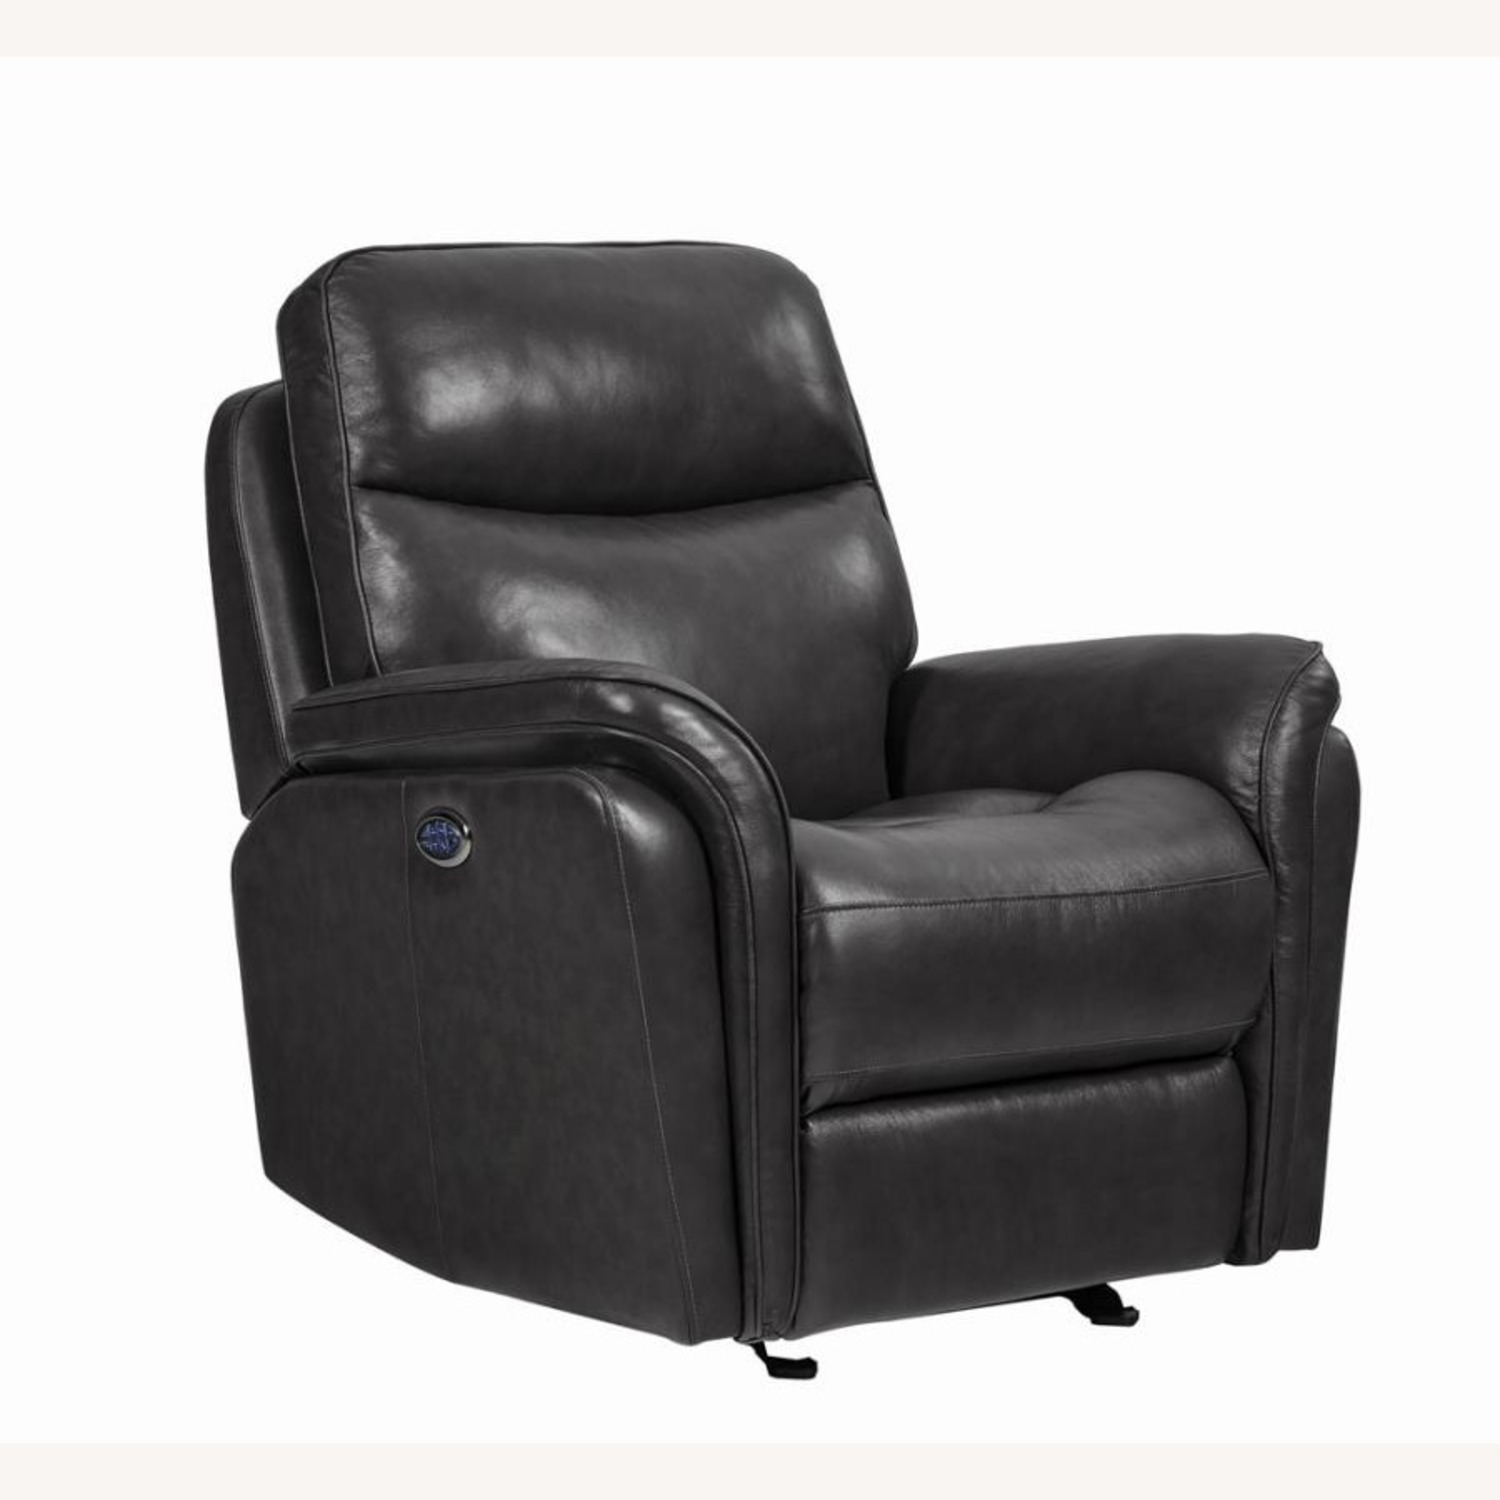 Power Glider Recliner In Charcoal Leather - image-0